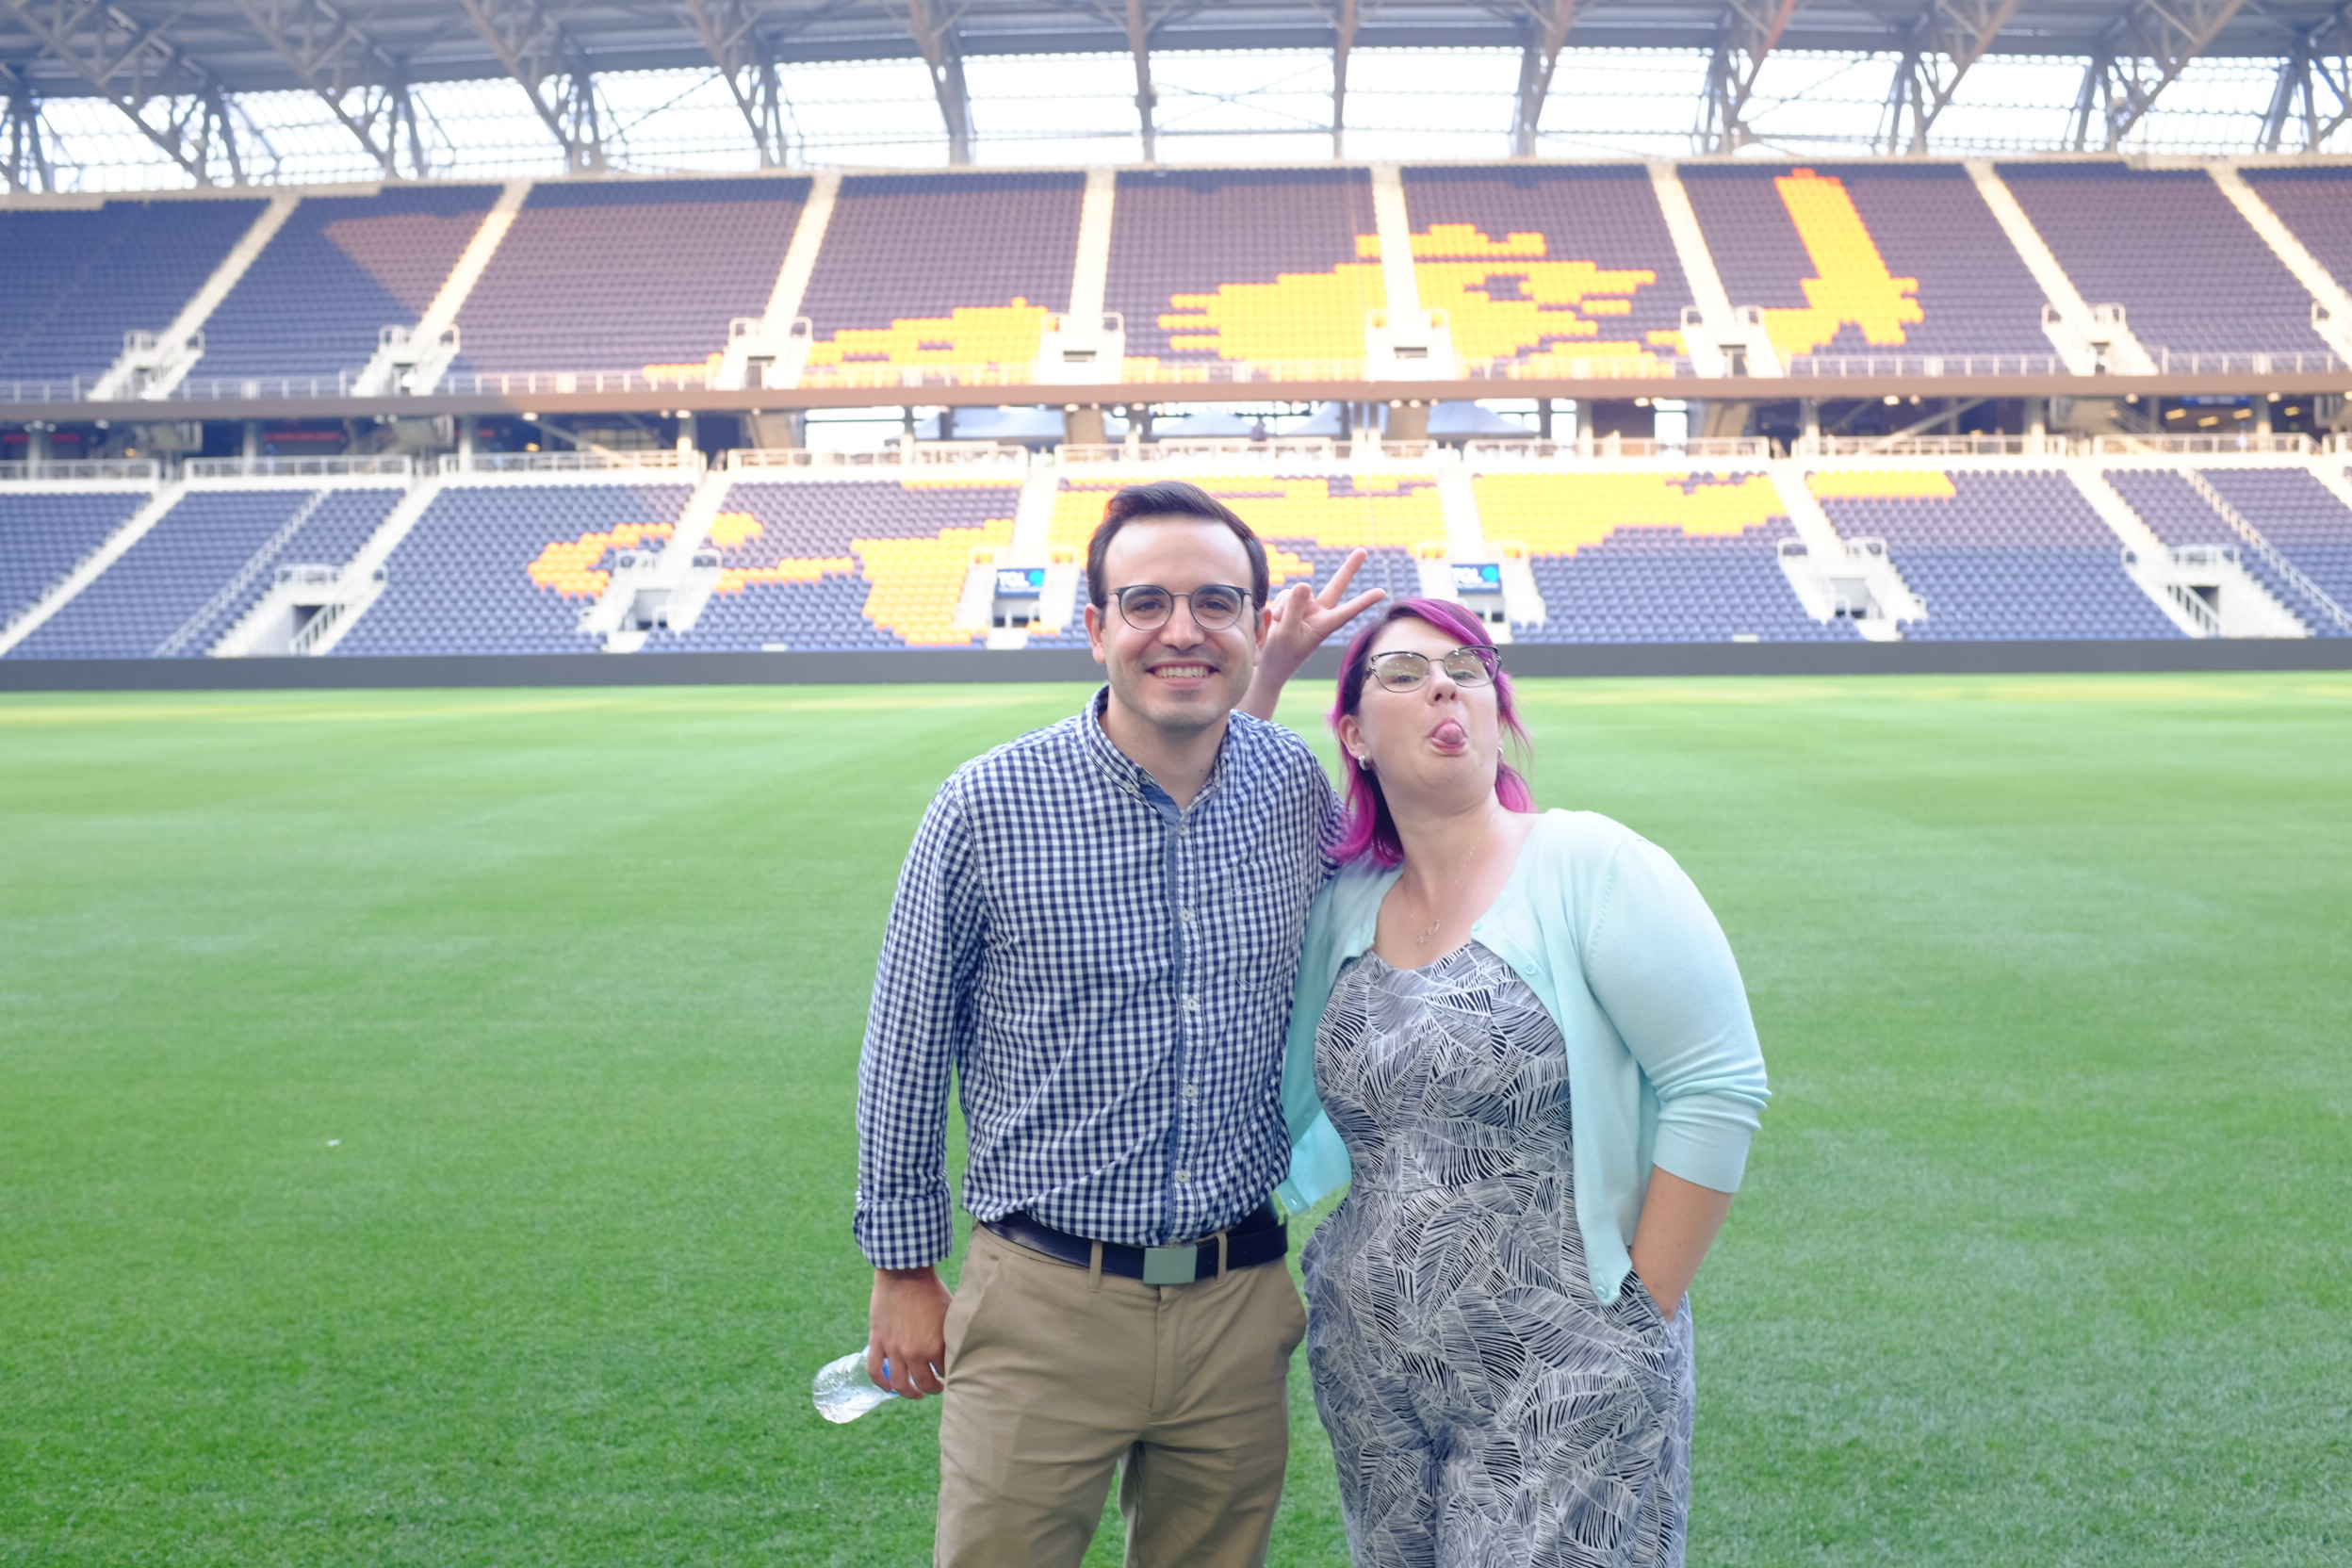 Tour leaders Nick and Jemma on the pitch.